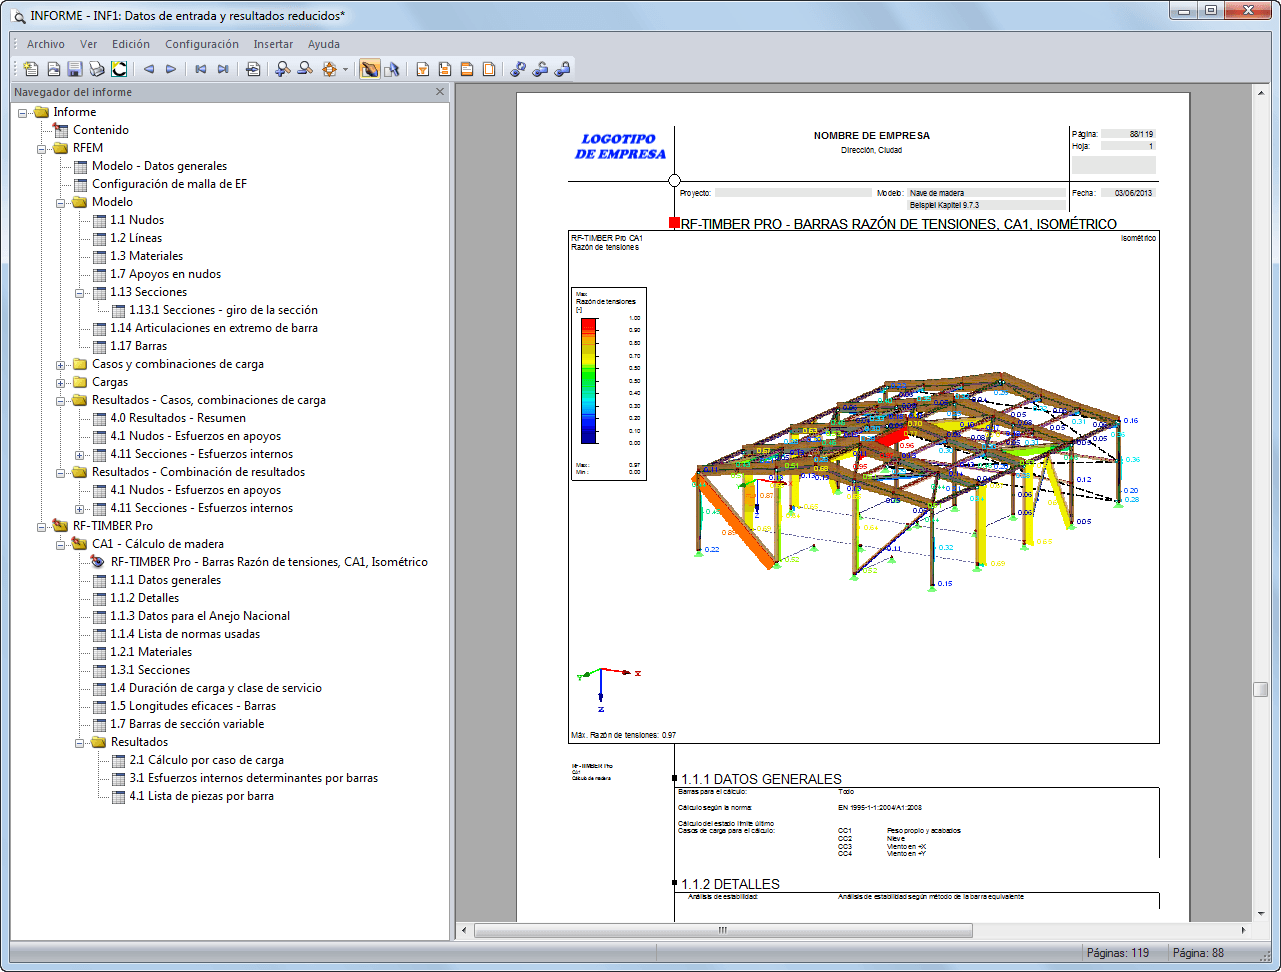 El Informe en RF-RF-TIMBER Pro, disponible en español